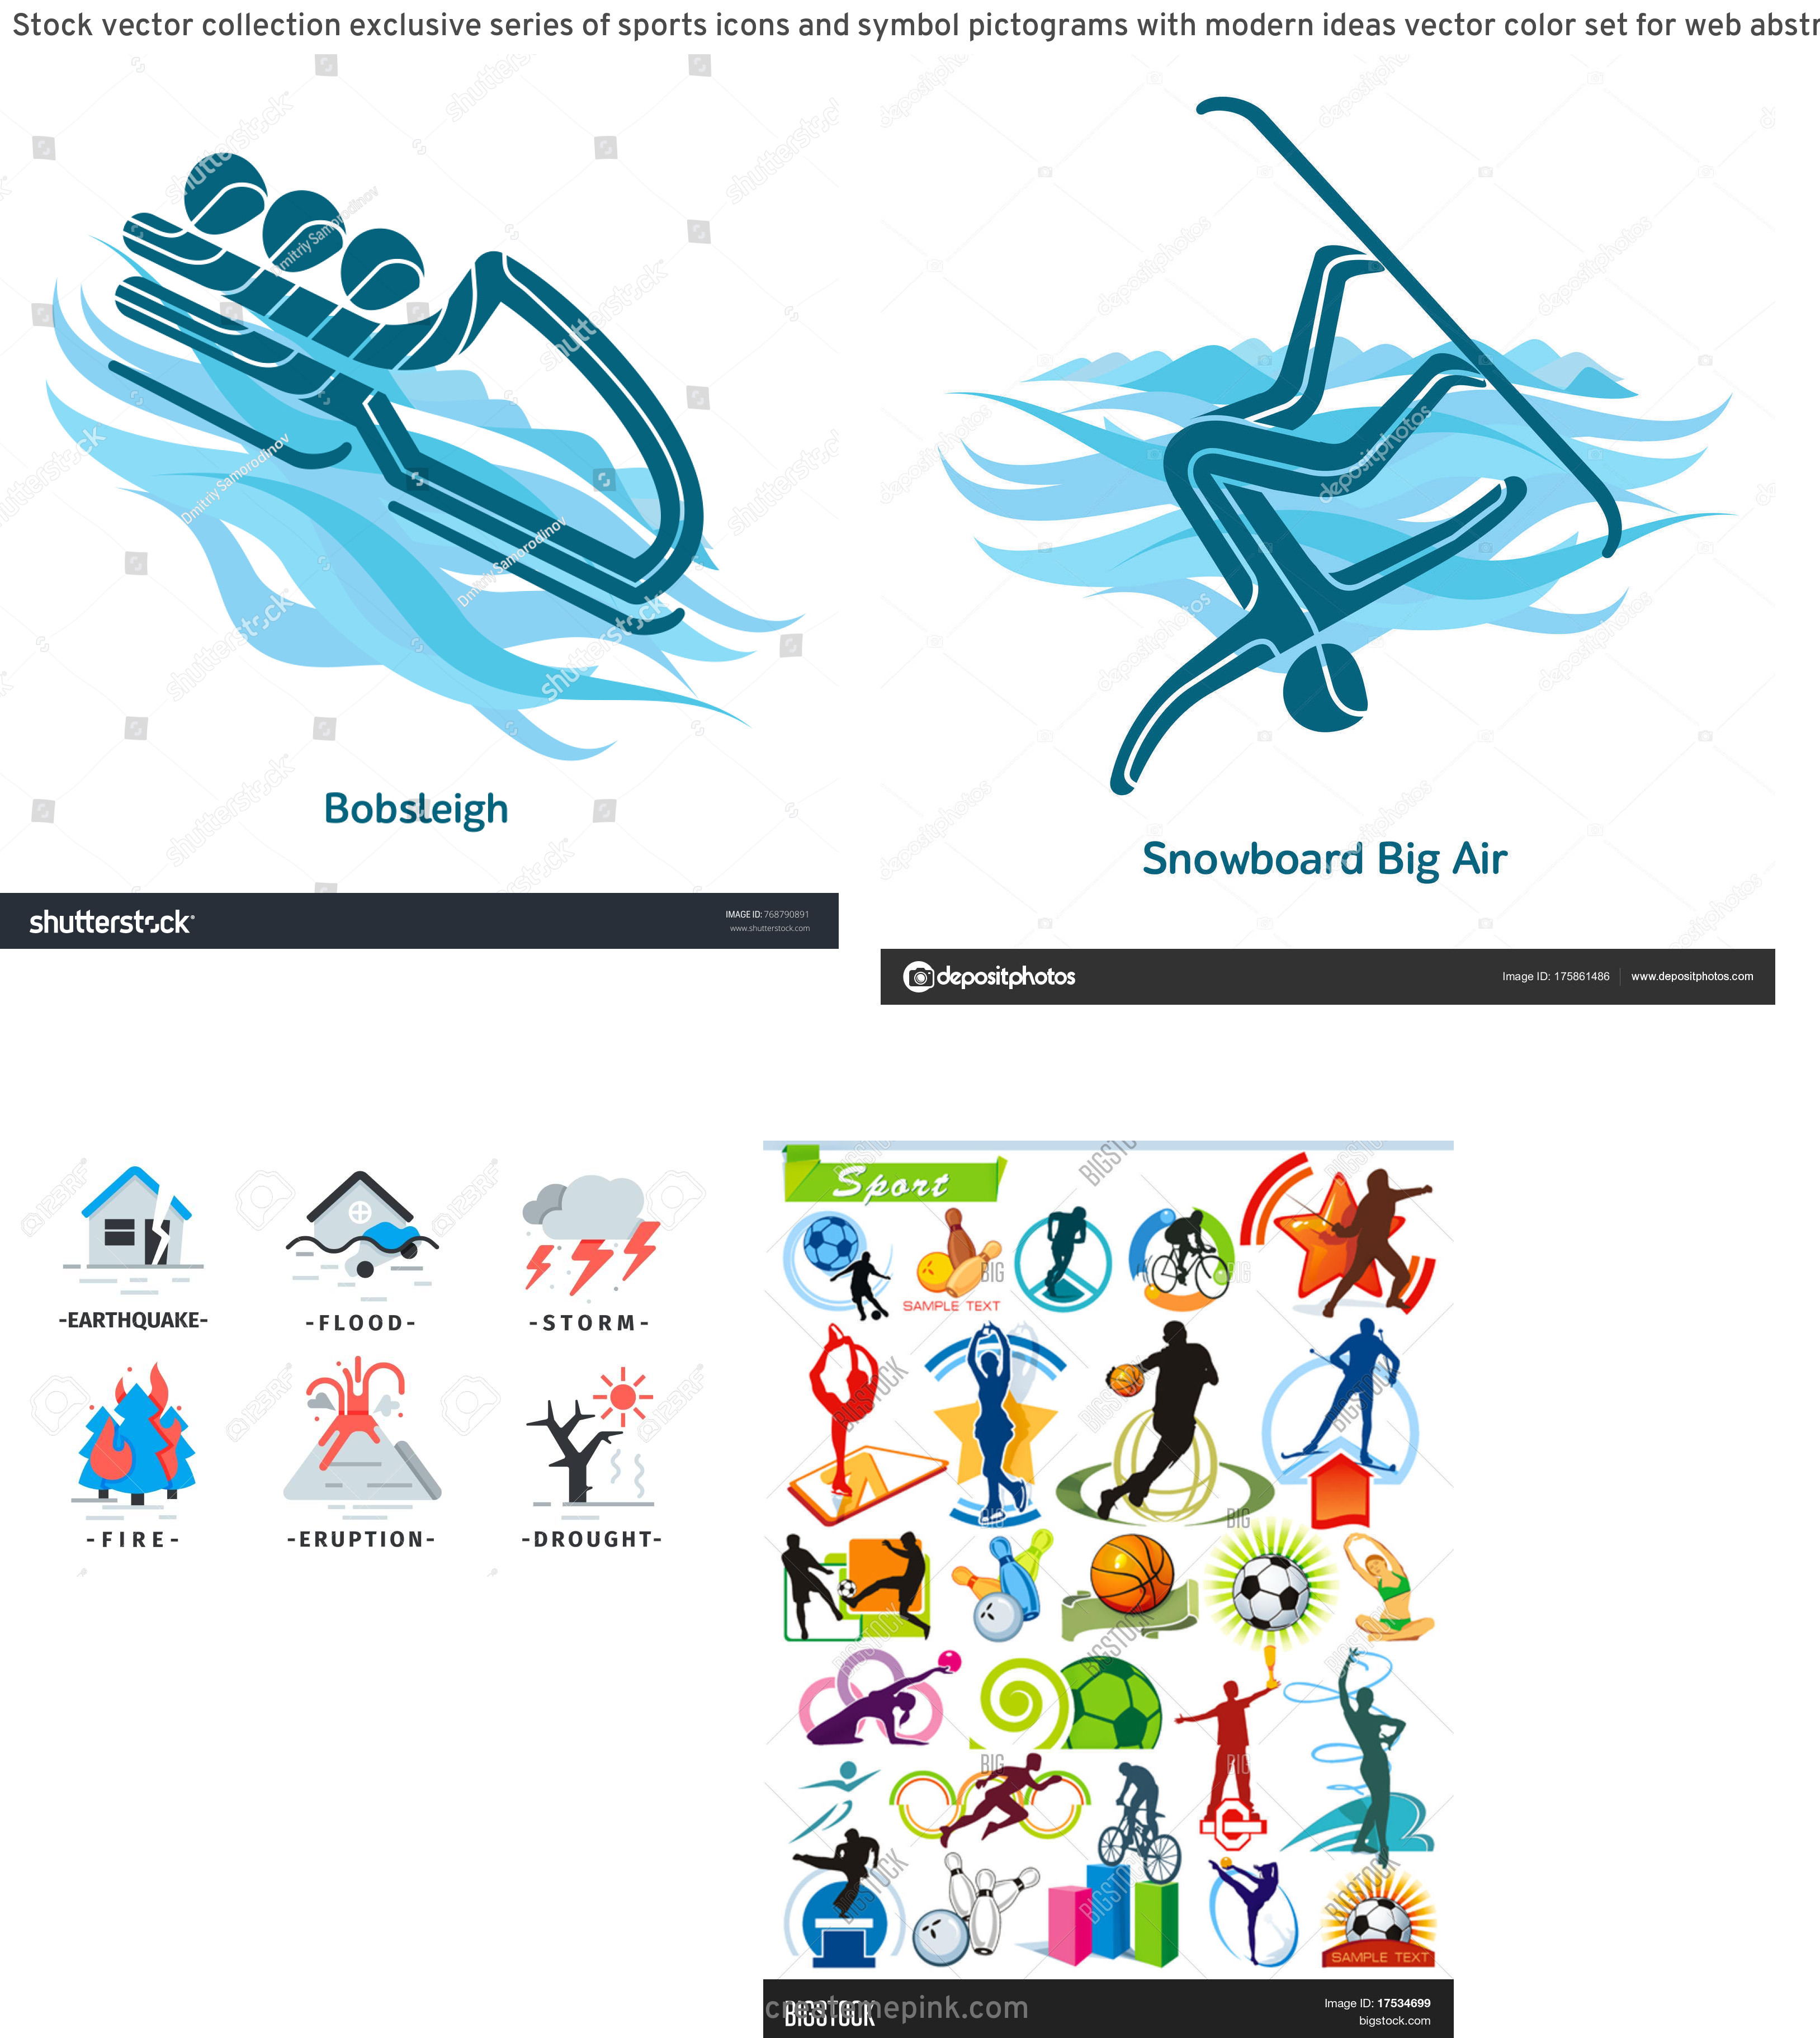 Vector Pictograms Events: Stock Vector Collection Exclusive Series Of Sports Icons And Symbol Pictograms With Modern Ideas Vector Color Set For Web Abstract Creative Element Corporate Templates Just Place Your Own Company Name